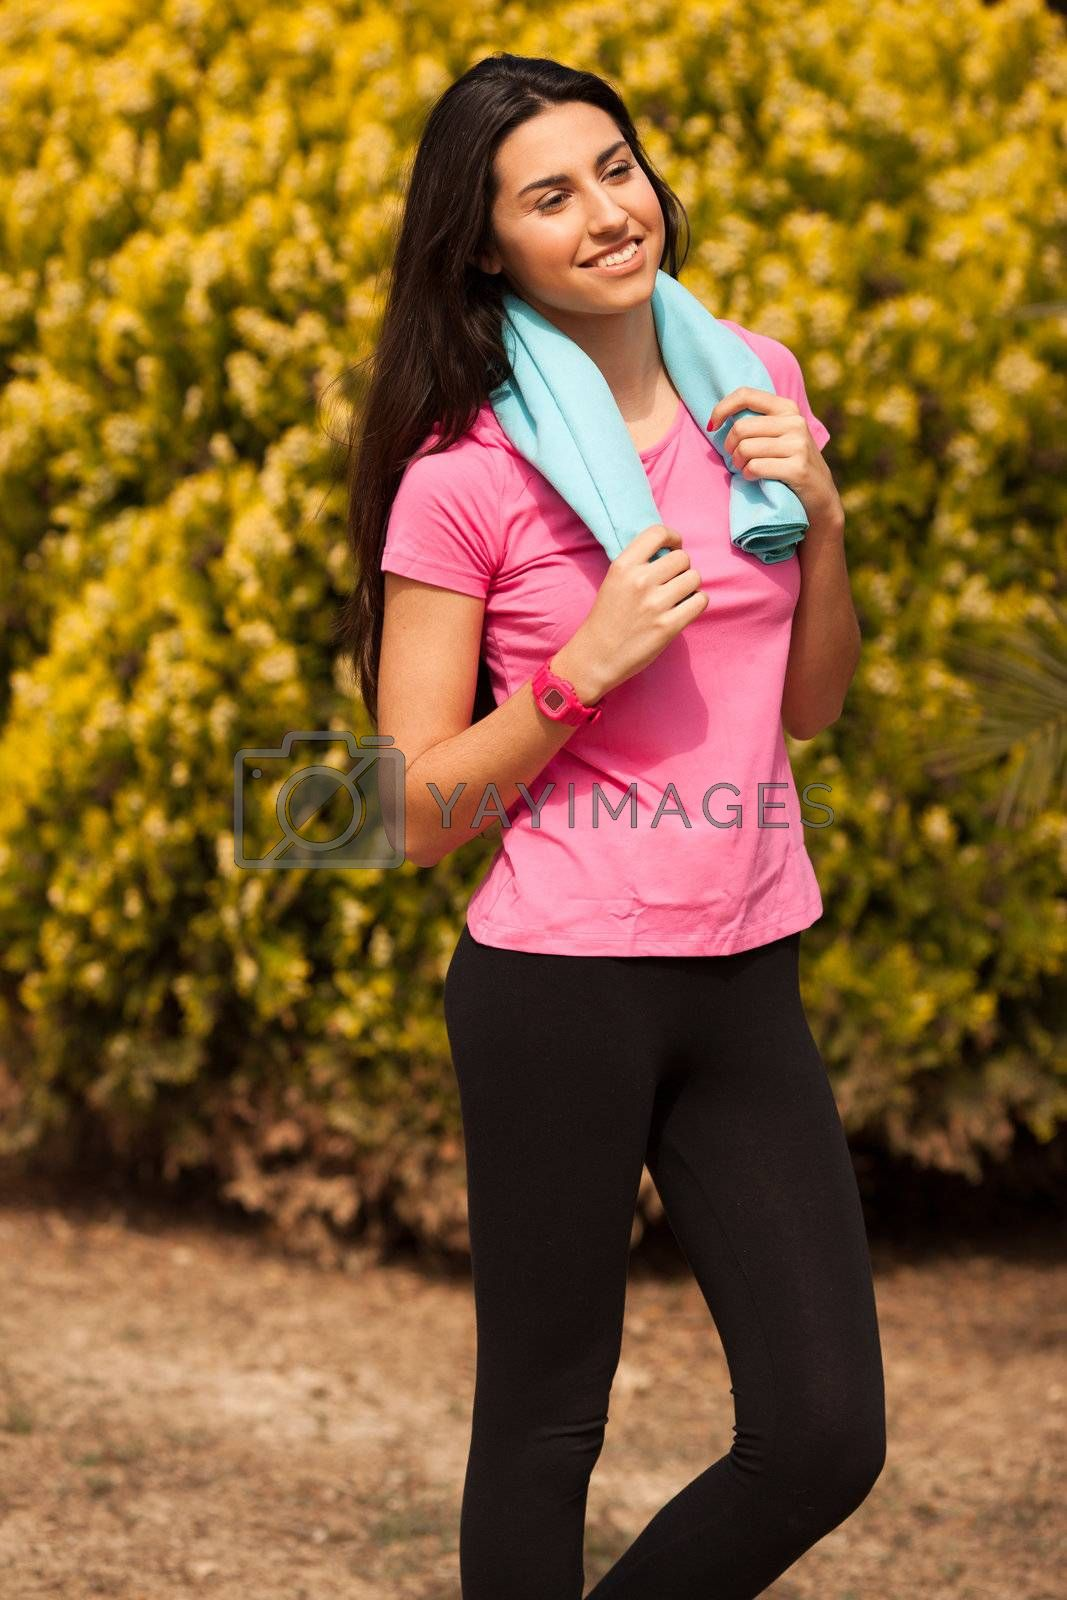 Sport woman with blue towell enjoying after fitness session